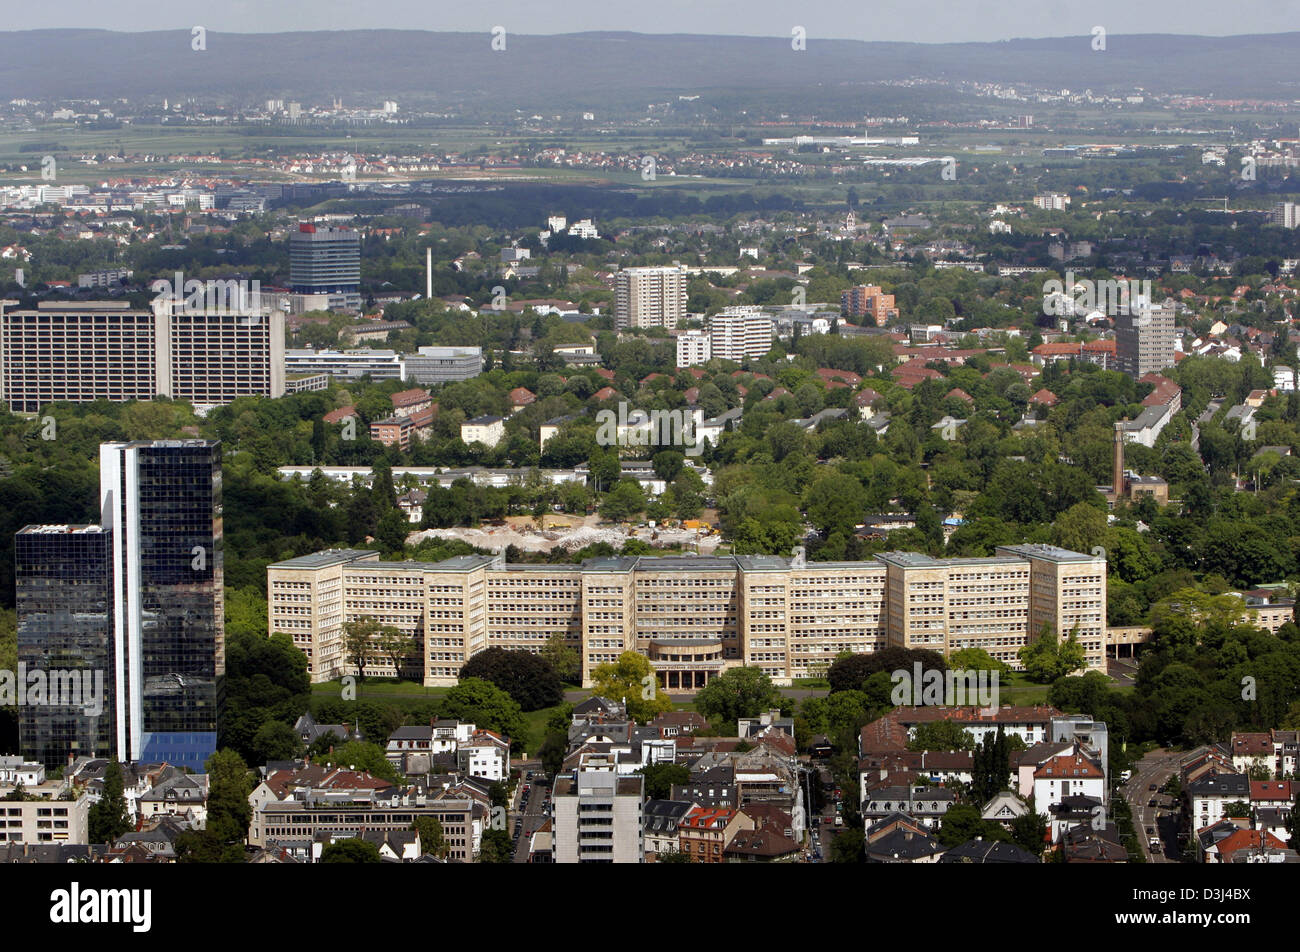 (dpa) - A view of the long-stretched Poelzig Bau (C, bottom), formerly the seat of the IG Fraben chemical group, Stock Photo